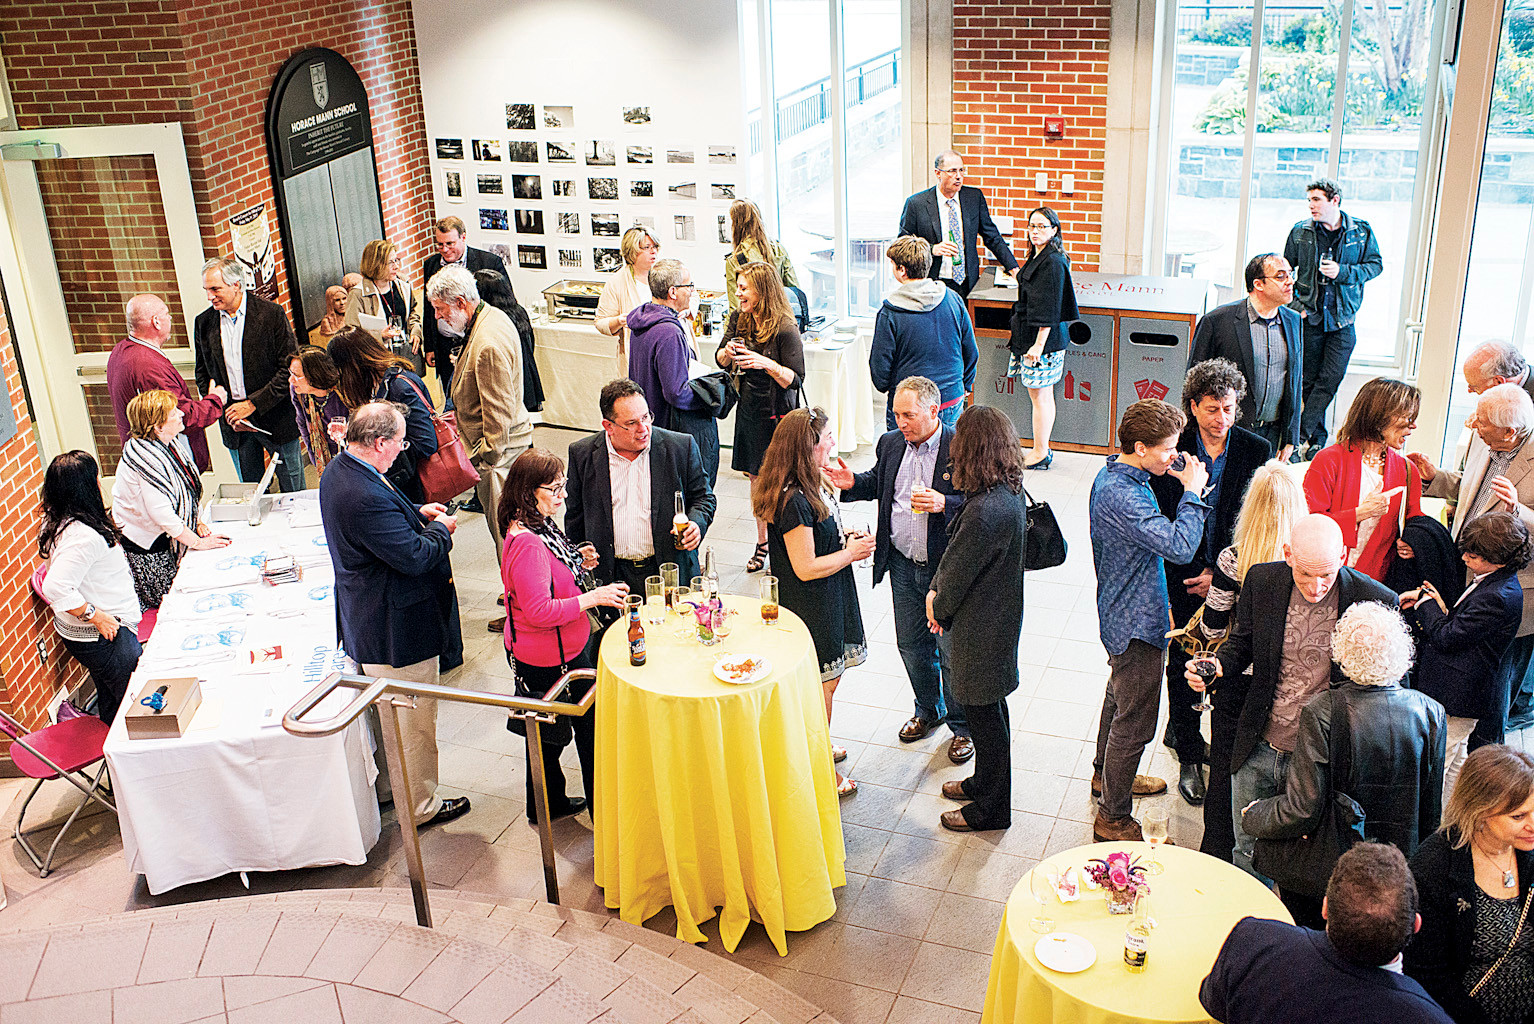 Guests enjoy cocktails and hors d'oeuvres at Horace Mann before a charity jazz concert by the Hilltop Cares.